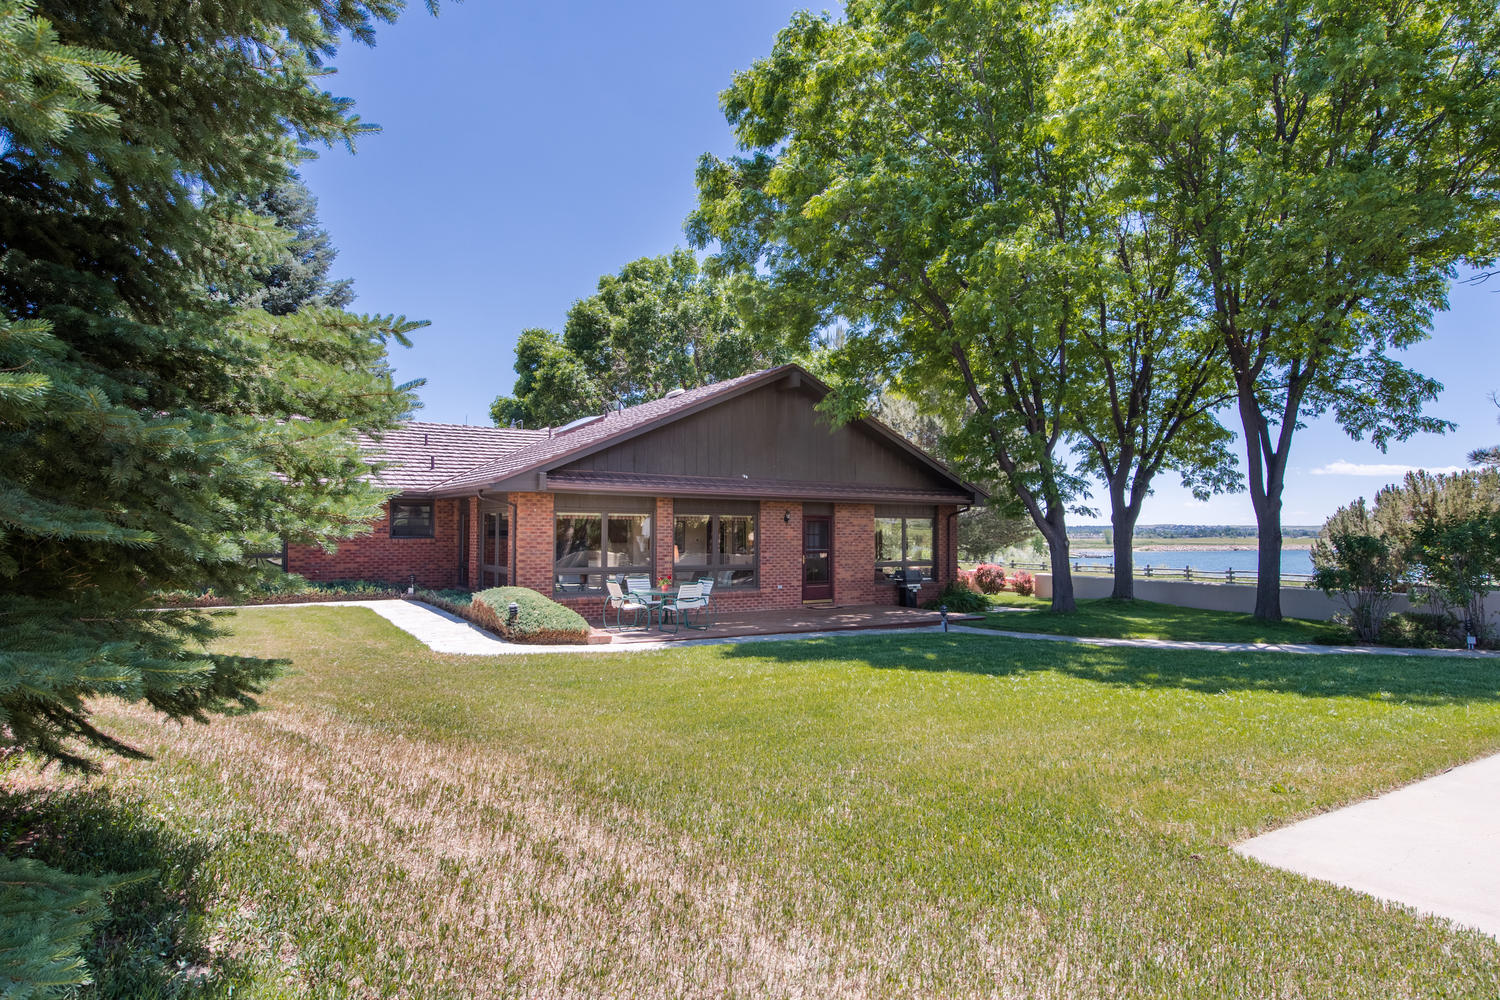 Additional photo for property listing at 163 Acre Waterfront County Estate 10135 N 75th St Longmont, Colorado 80503 United States